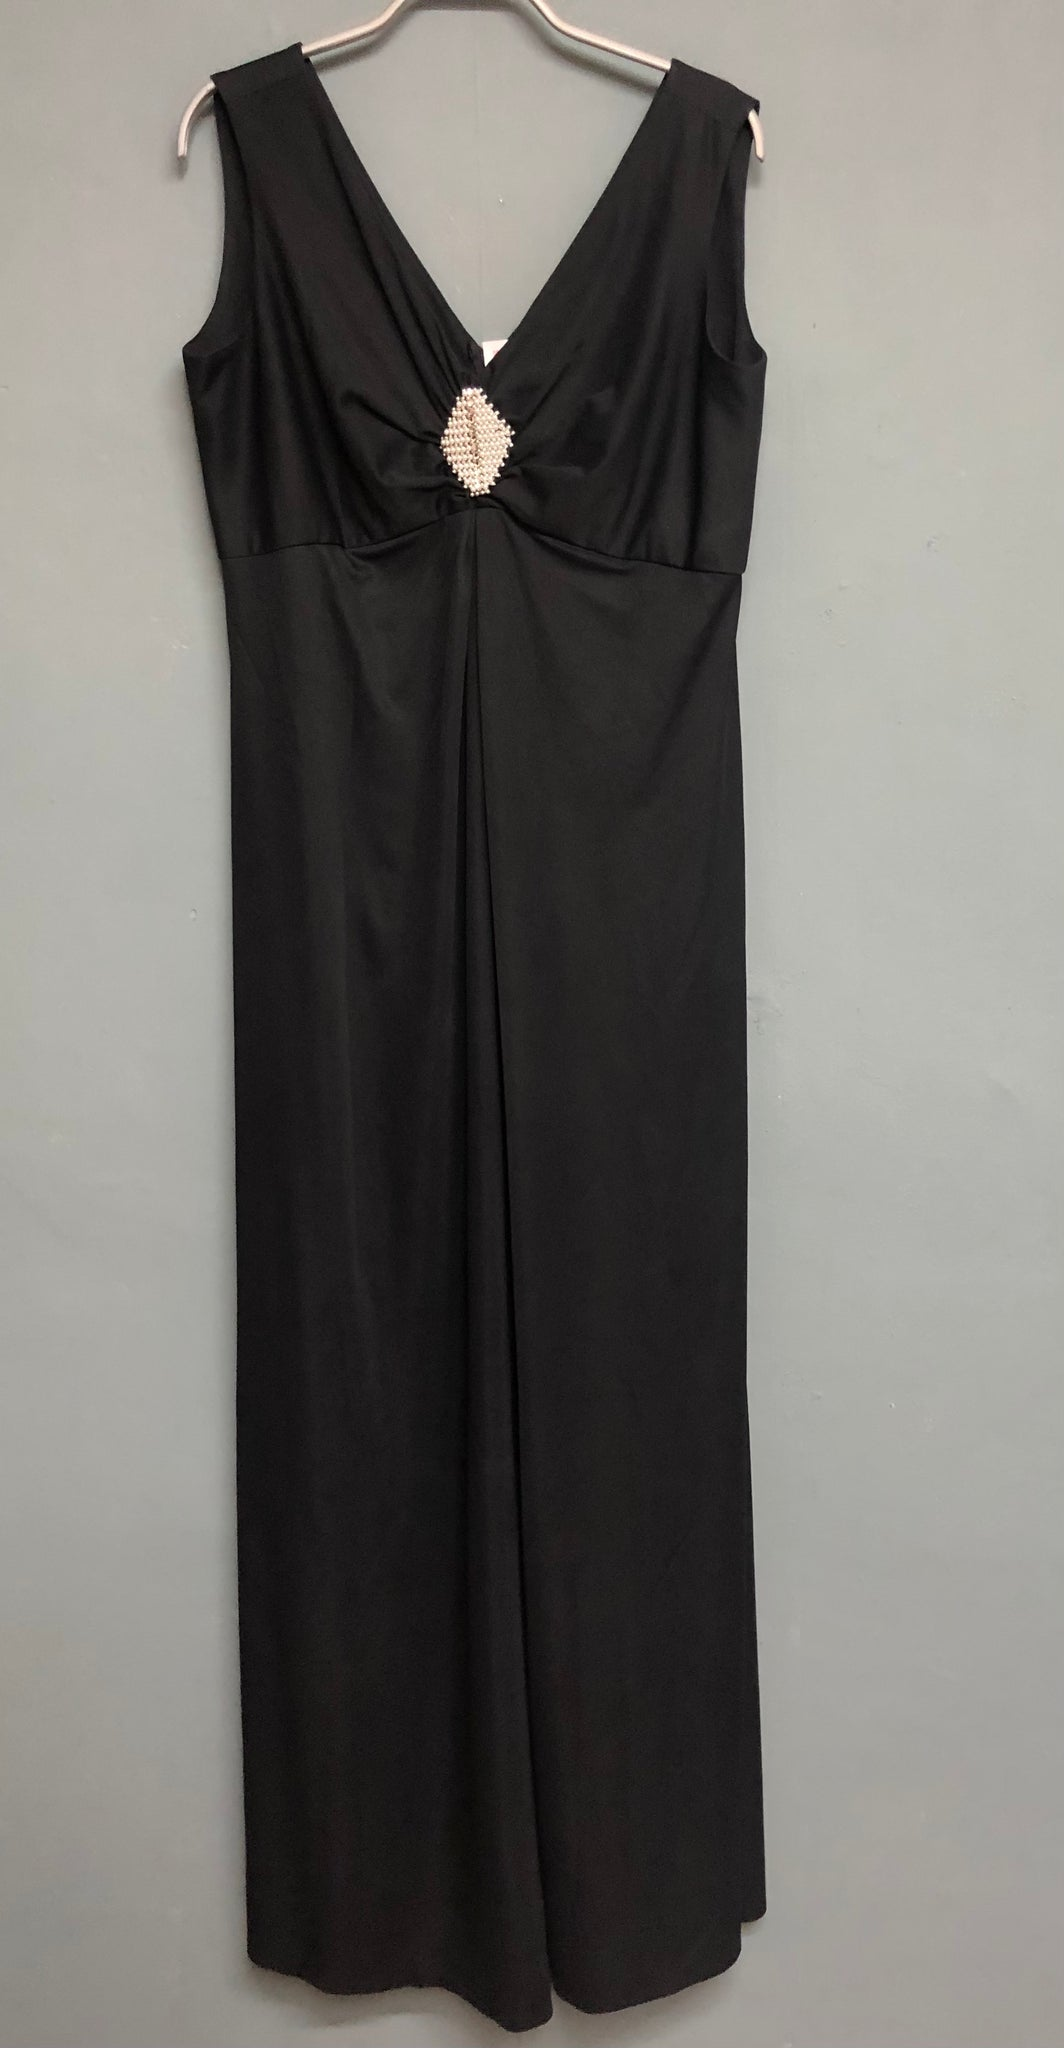 Black Dress with Diamond Design detail Size 16